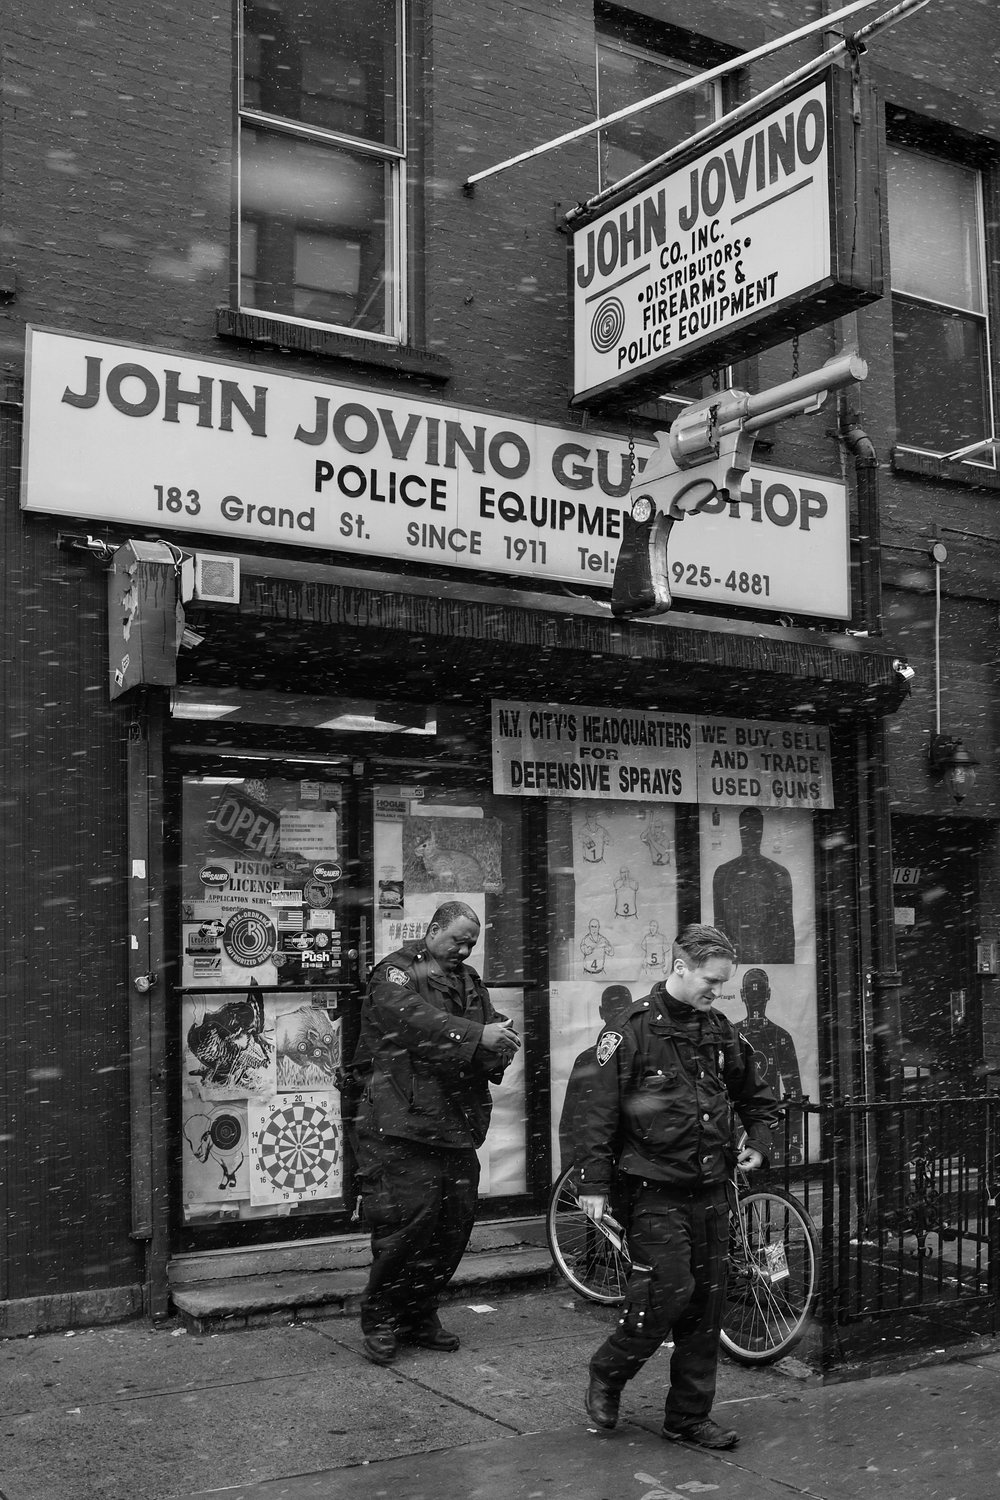 John Jovino Gun Shop. Grand Street. Little Italy. New York City. 2017.